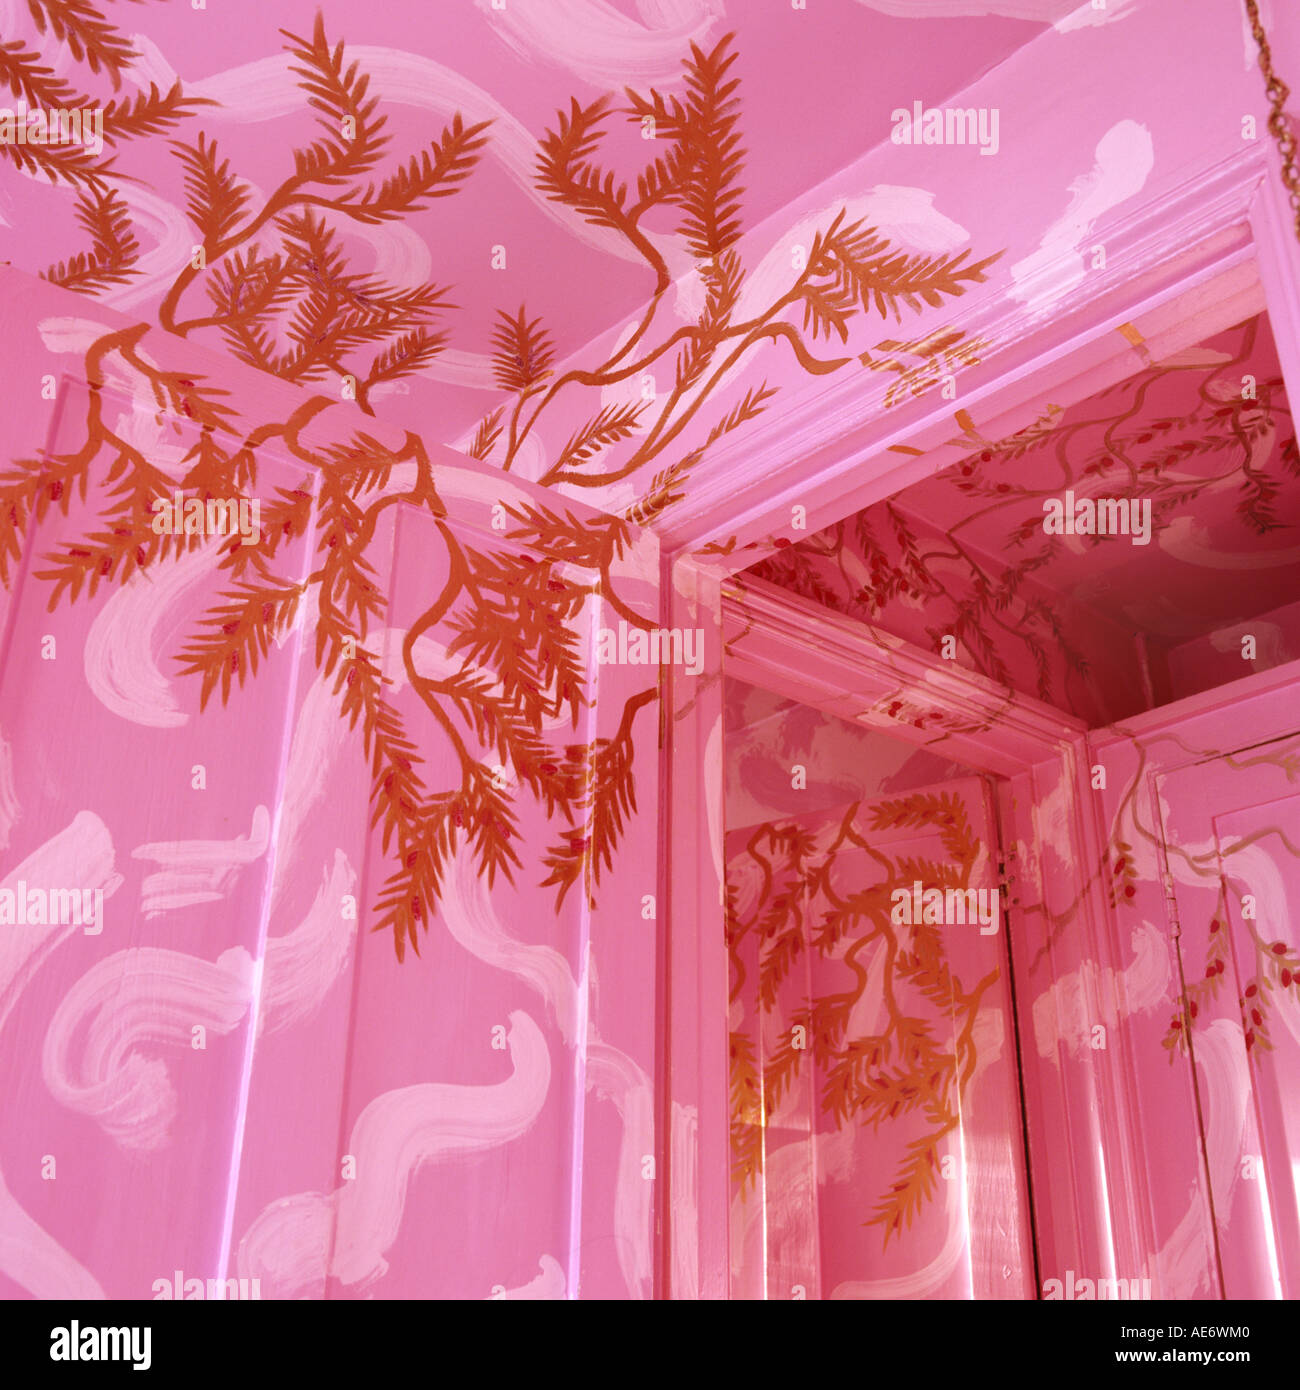 pink and gold hand-painted walls and ceiling by artist Carolinda Tolstoy - Stock Image